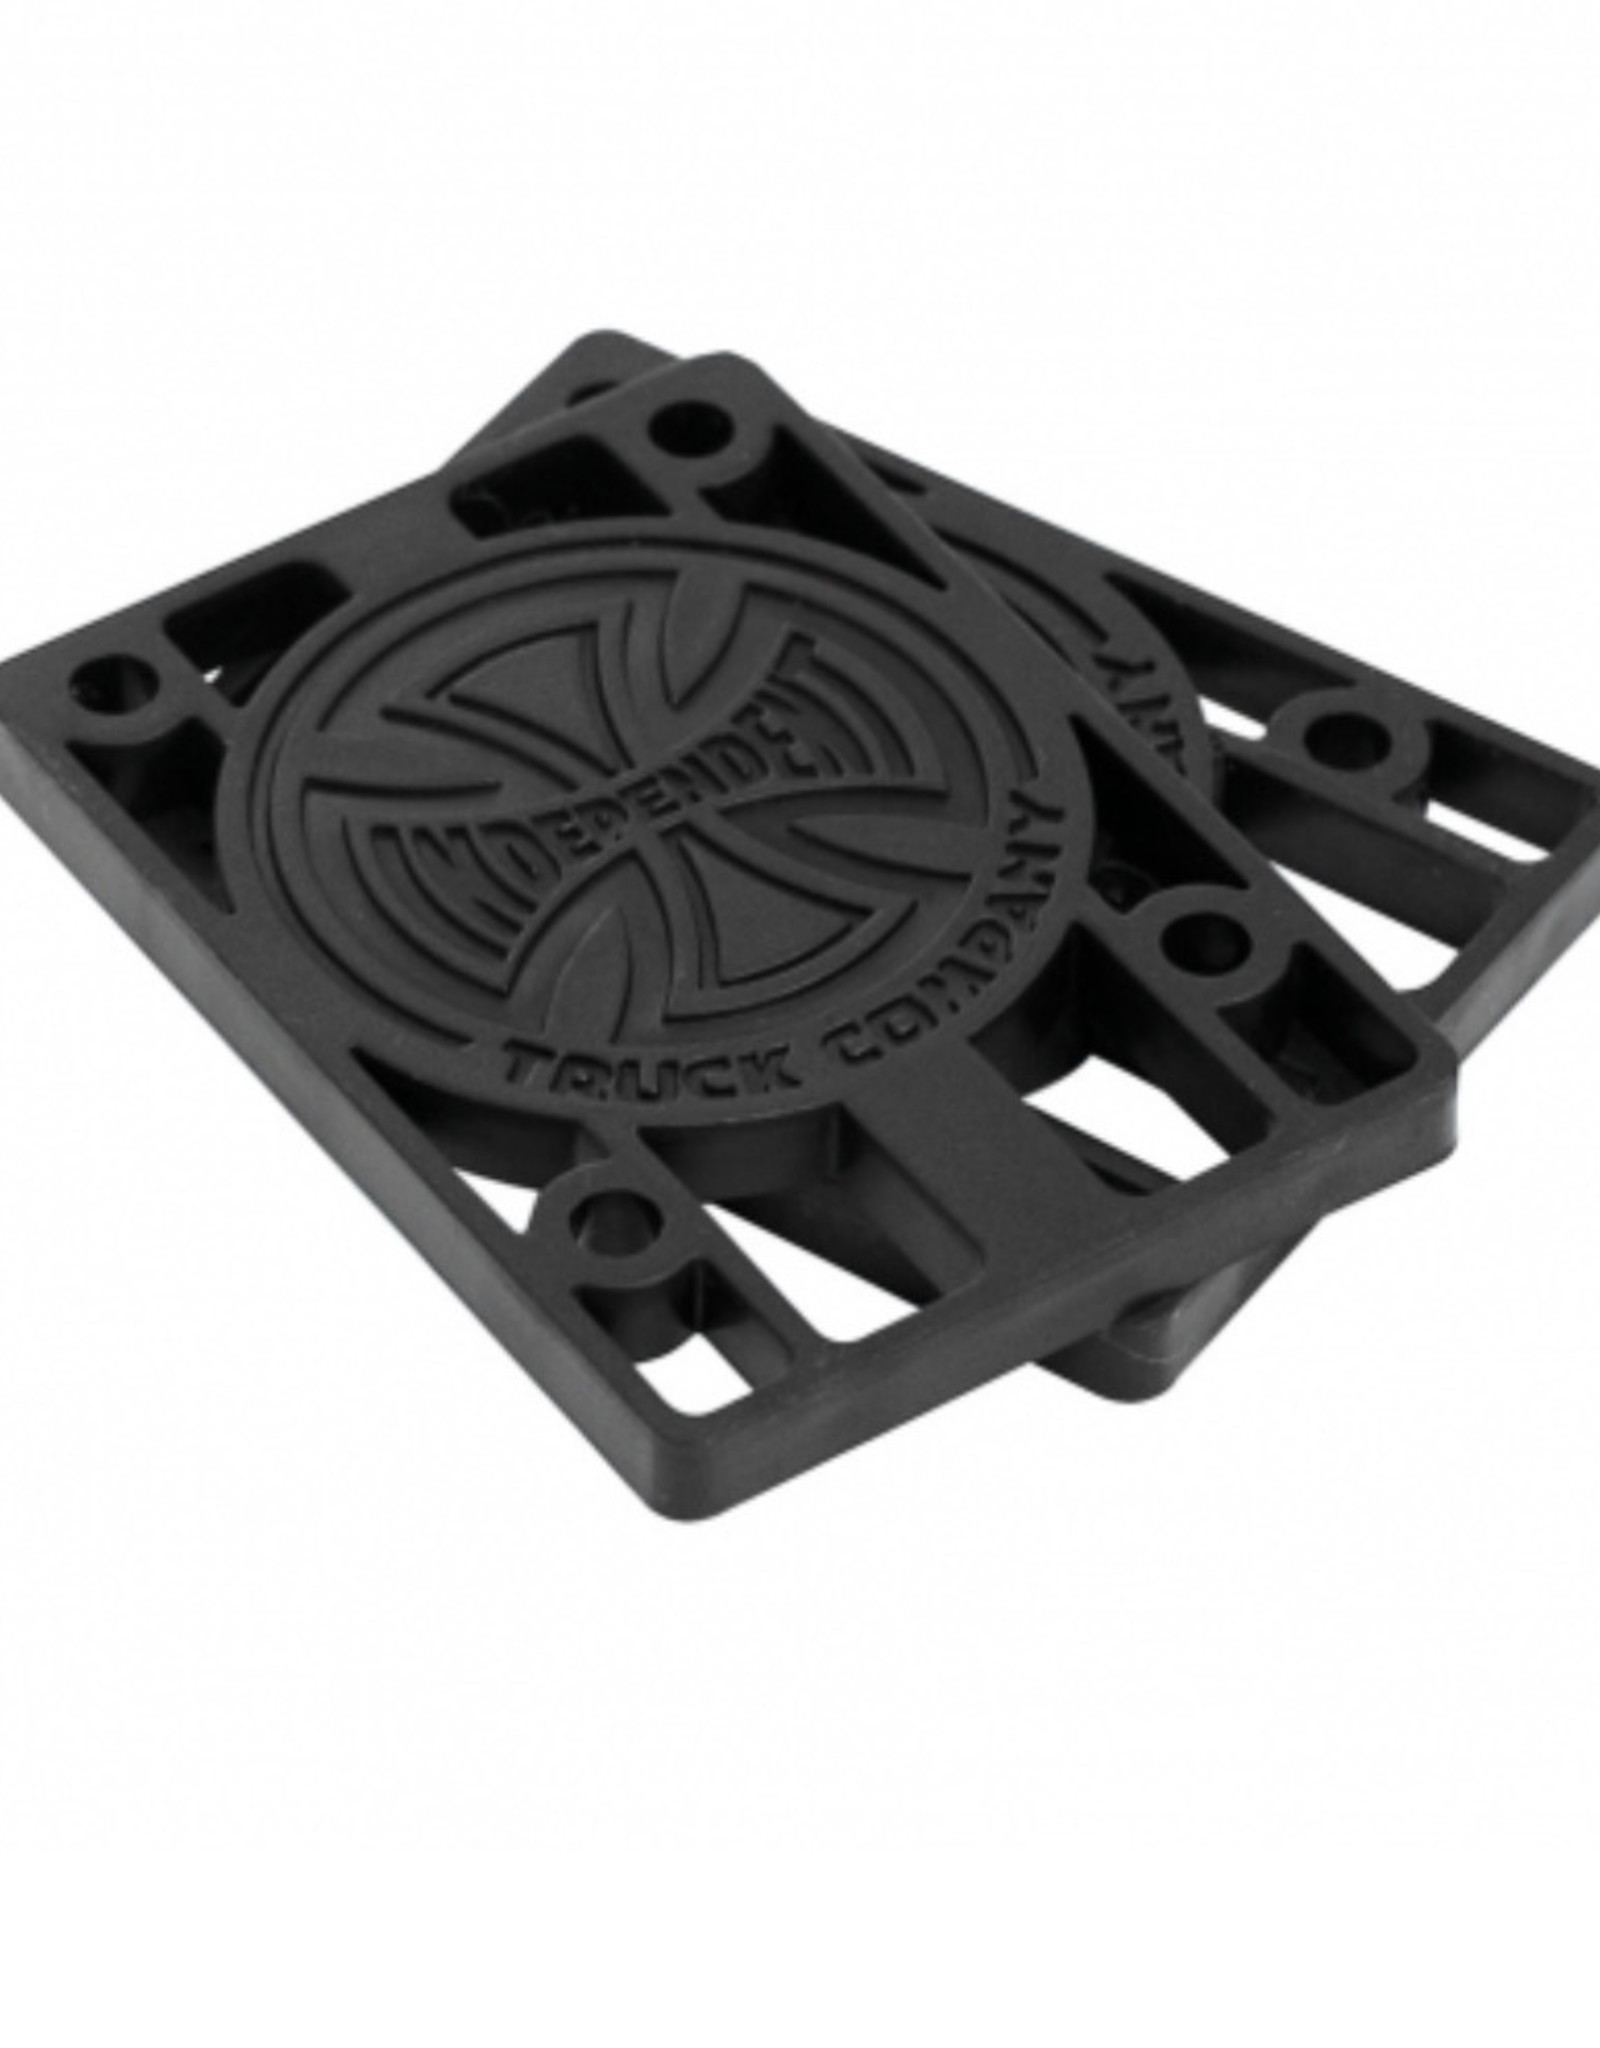 INDEPENDENT INDEPENDENT 1/8 INCH RISERS - (ALL COLORS)